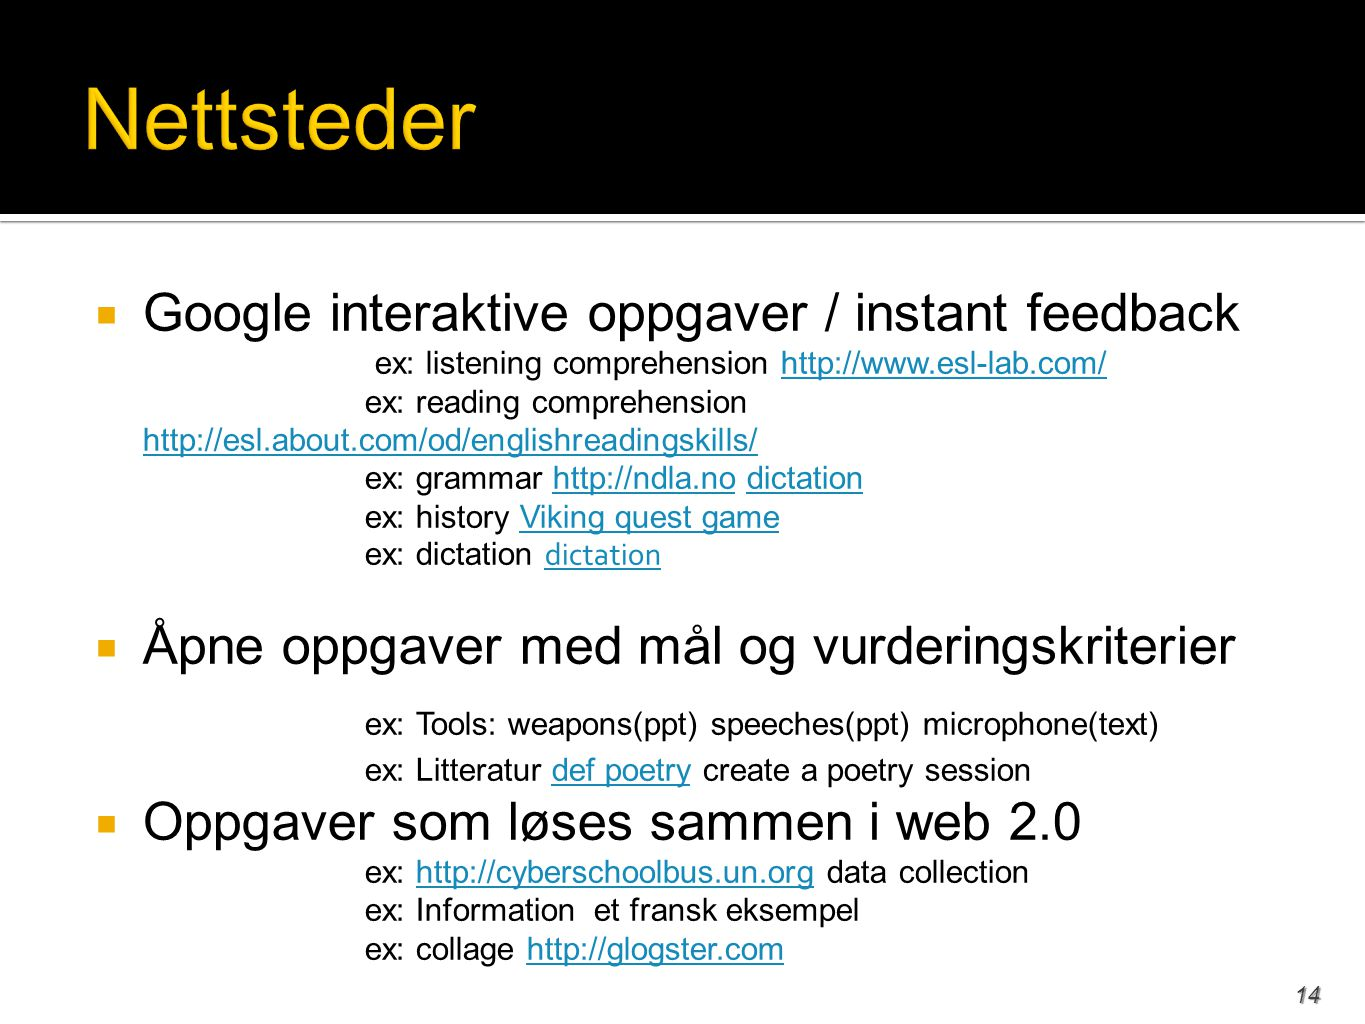 Nettsteder ex: Tools: weapons(ppt) speeches(ppt) microphone(text)